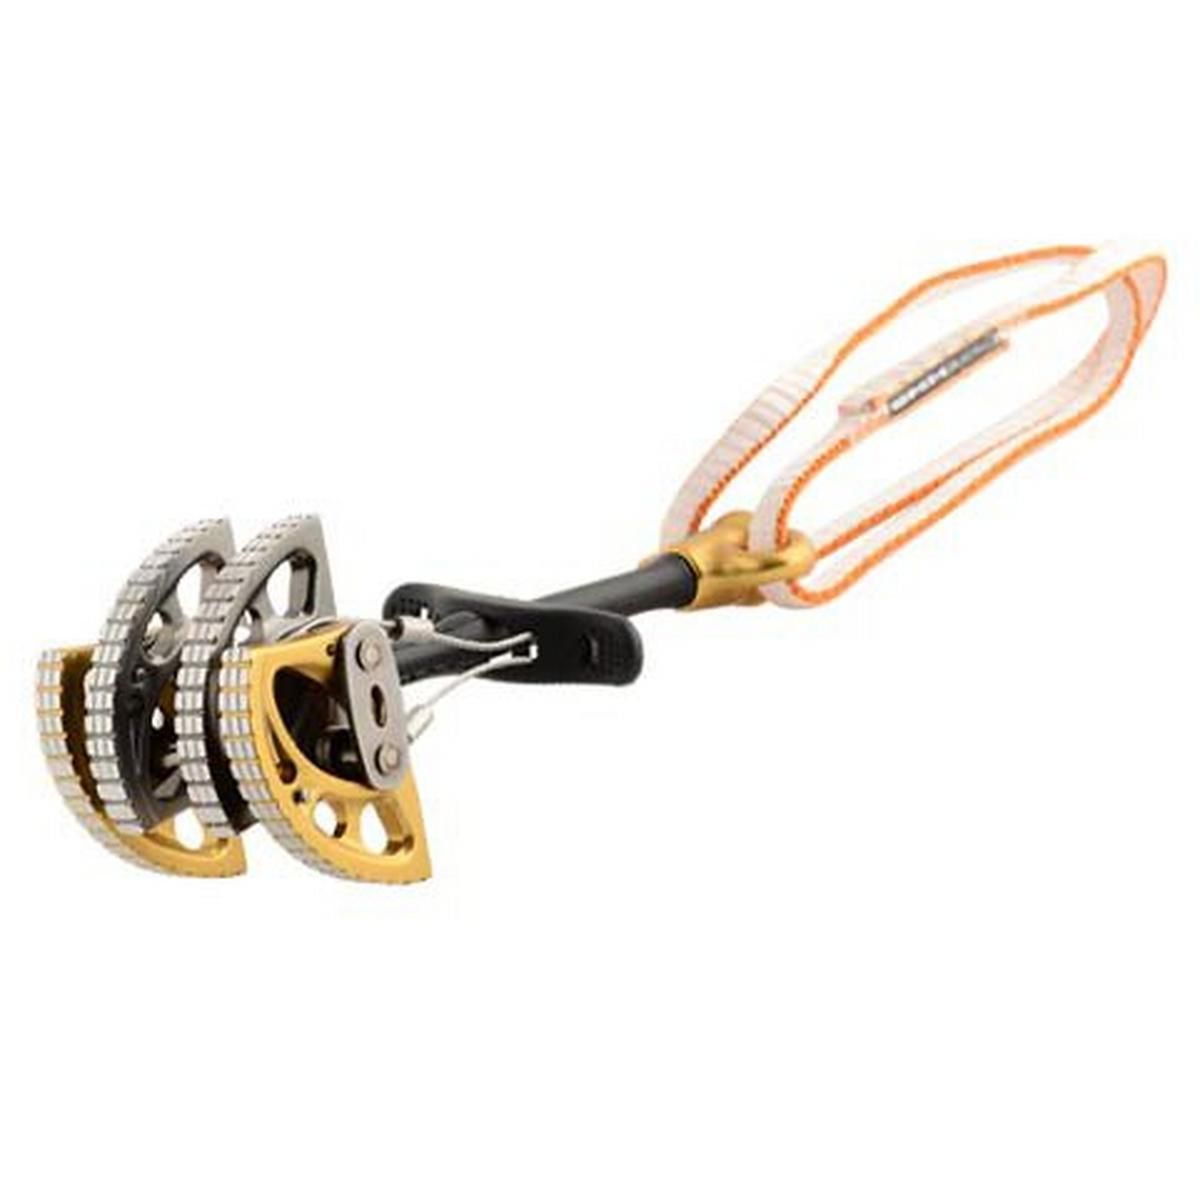 Dmm Dragon Cam Size 4 Gold